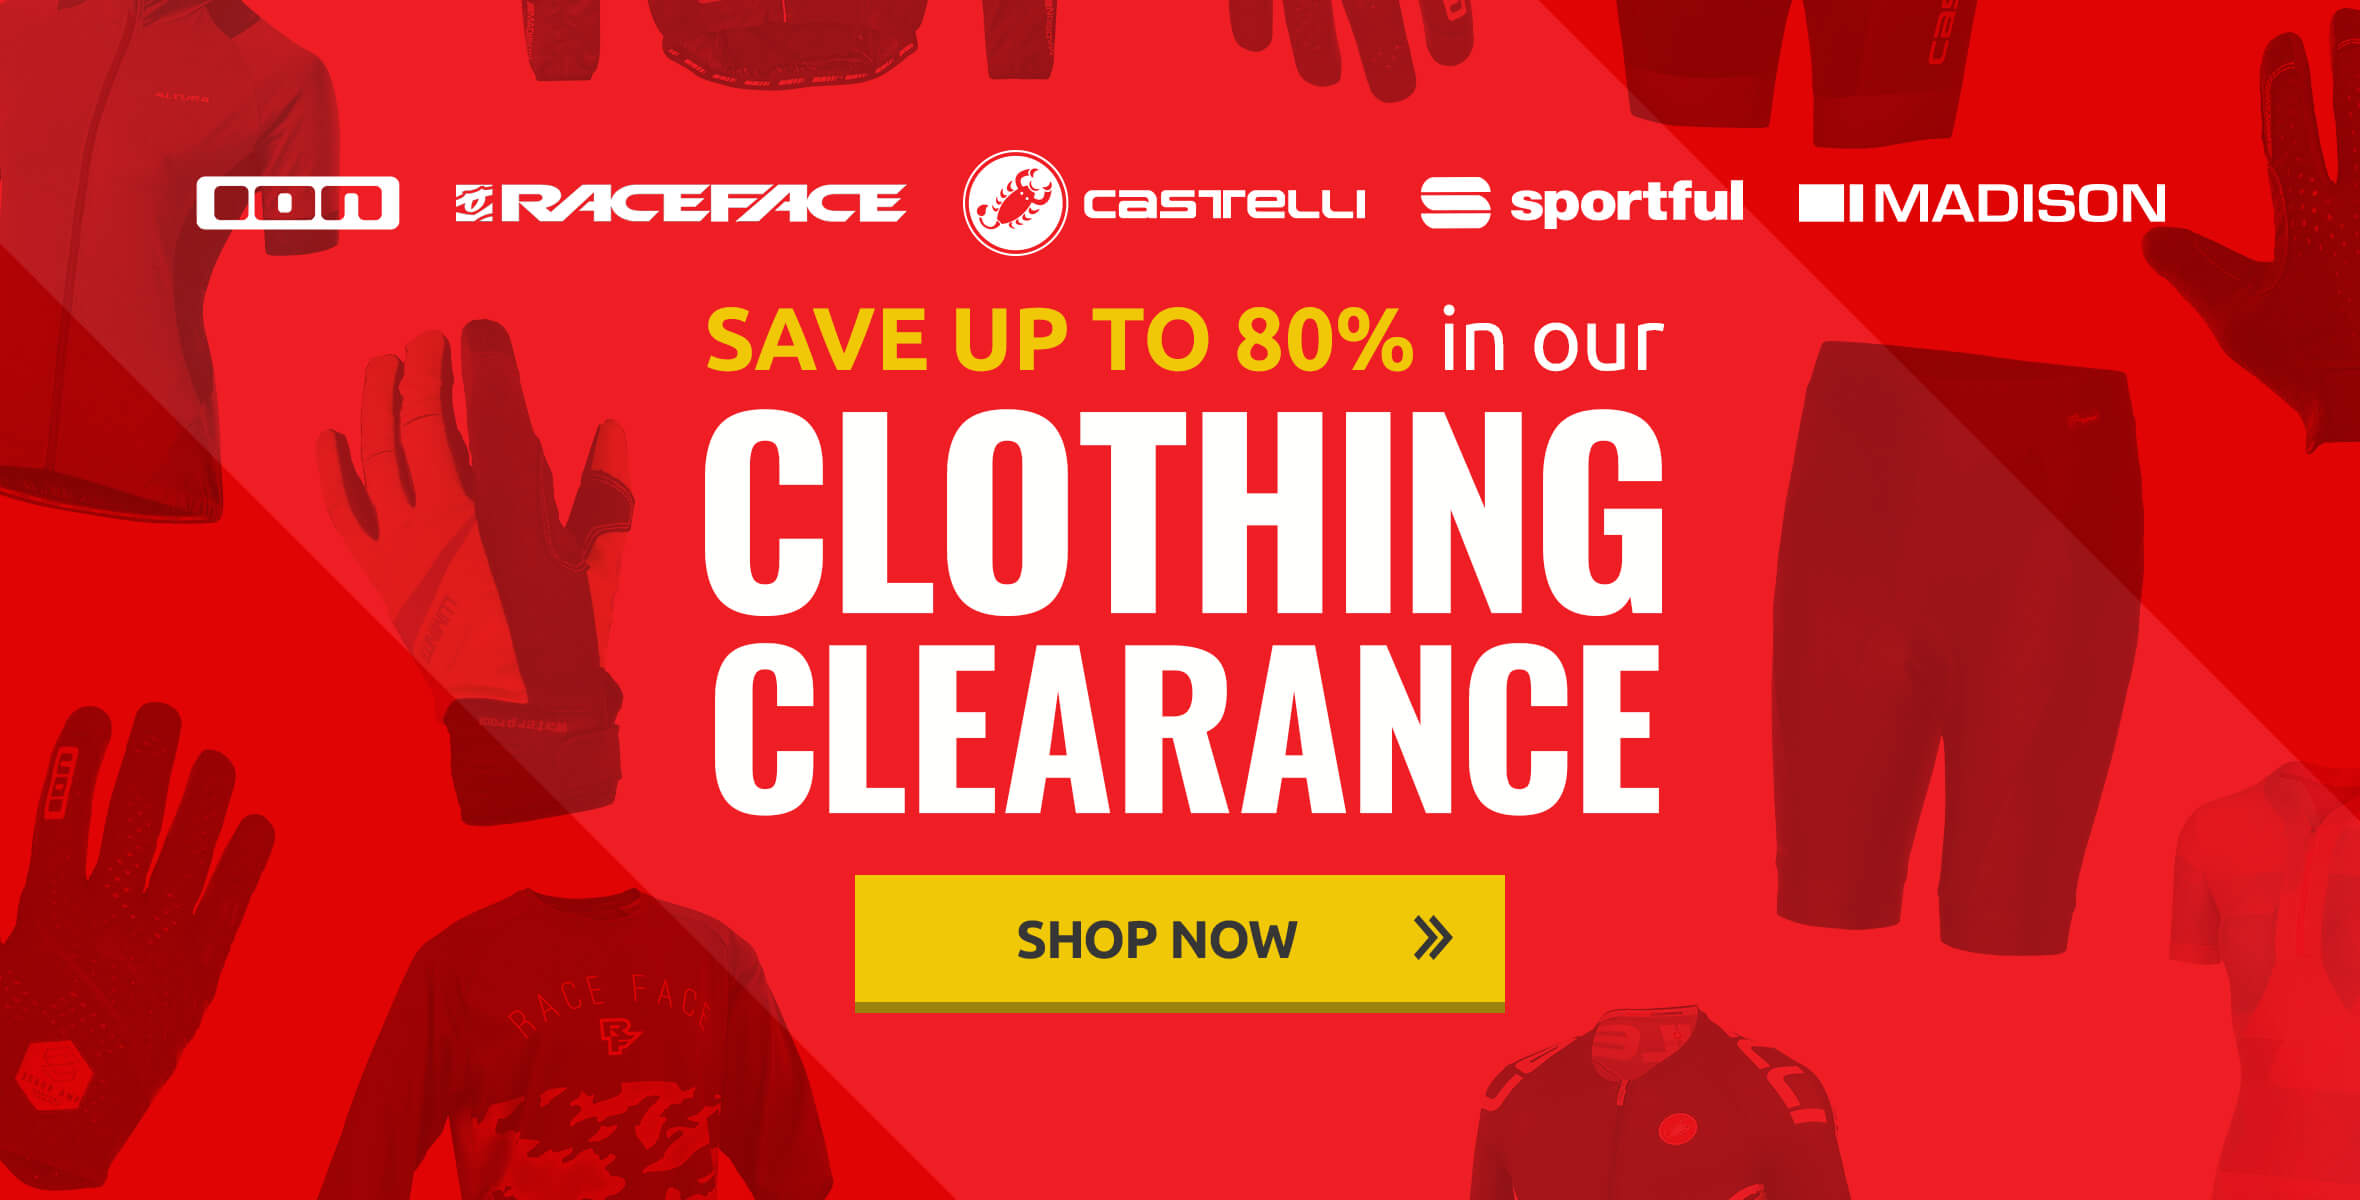 Save up to 80% in our Clothing Clearance